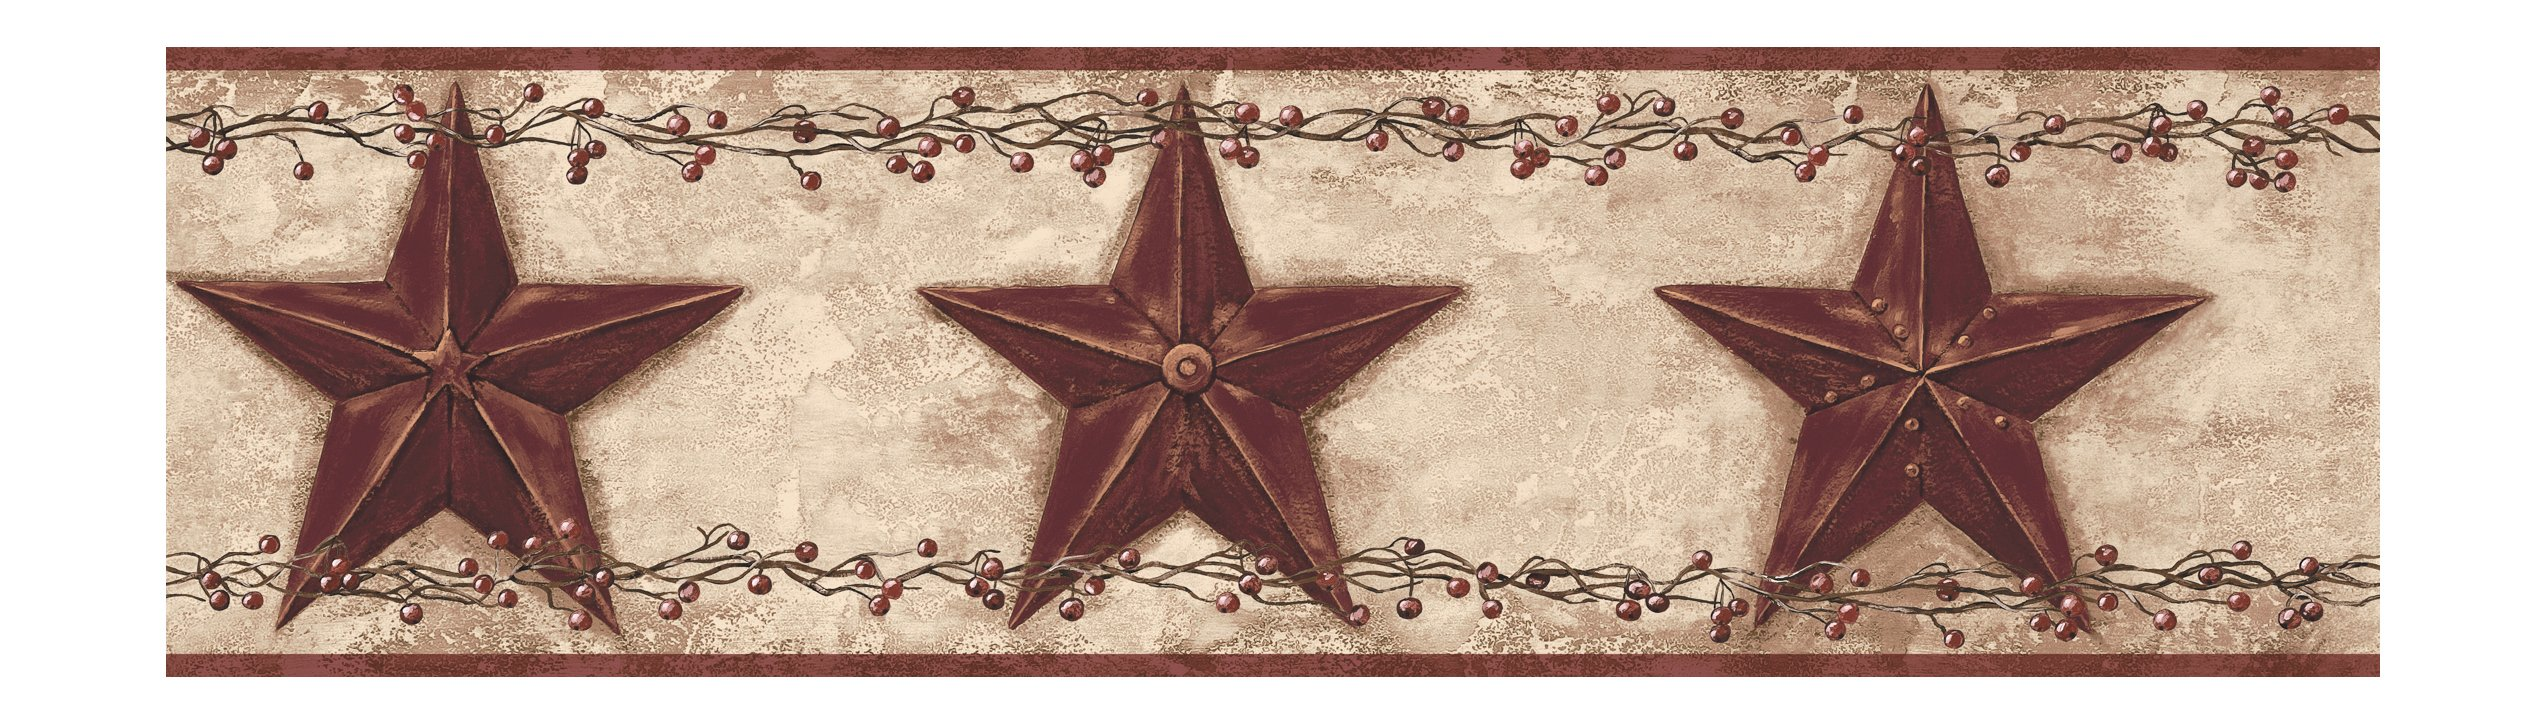 York Wallcoverings Best Of Country PC3918BD Barn Star Berry Border, Khaki/Burgundy